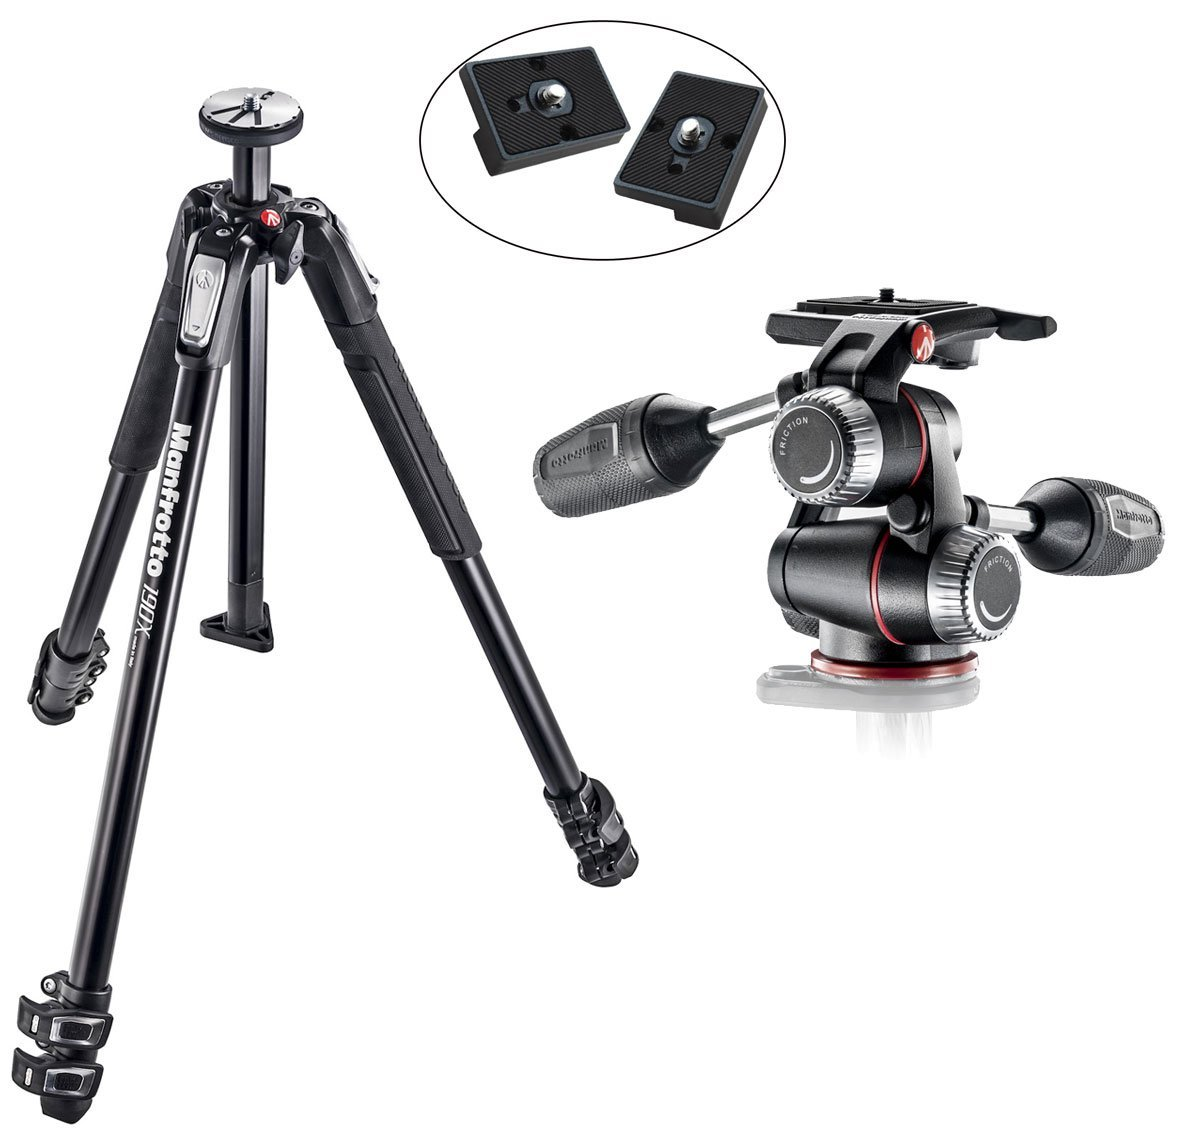 Manfrotto MT190X3 3 Section Aluminum Tripod With X-PRO 3-Way Head with Retractable Levers & Friction Controls with Two Replacement Quick Release Plates for the RC2 Rapid Connect Adapter